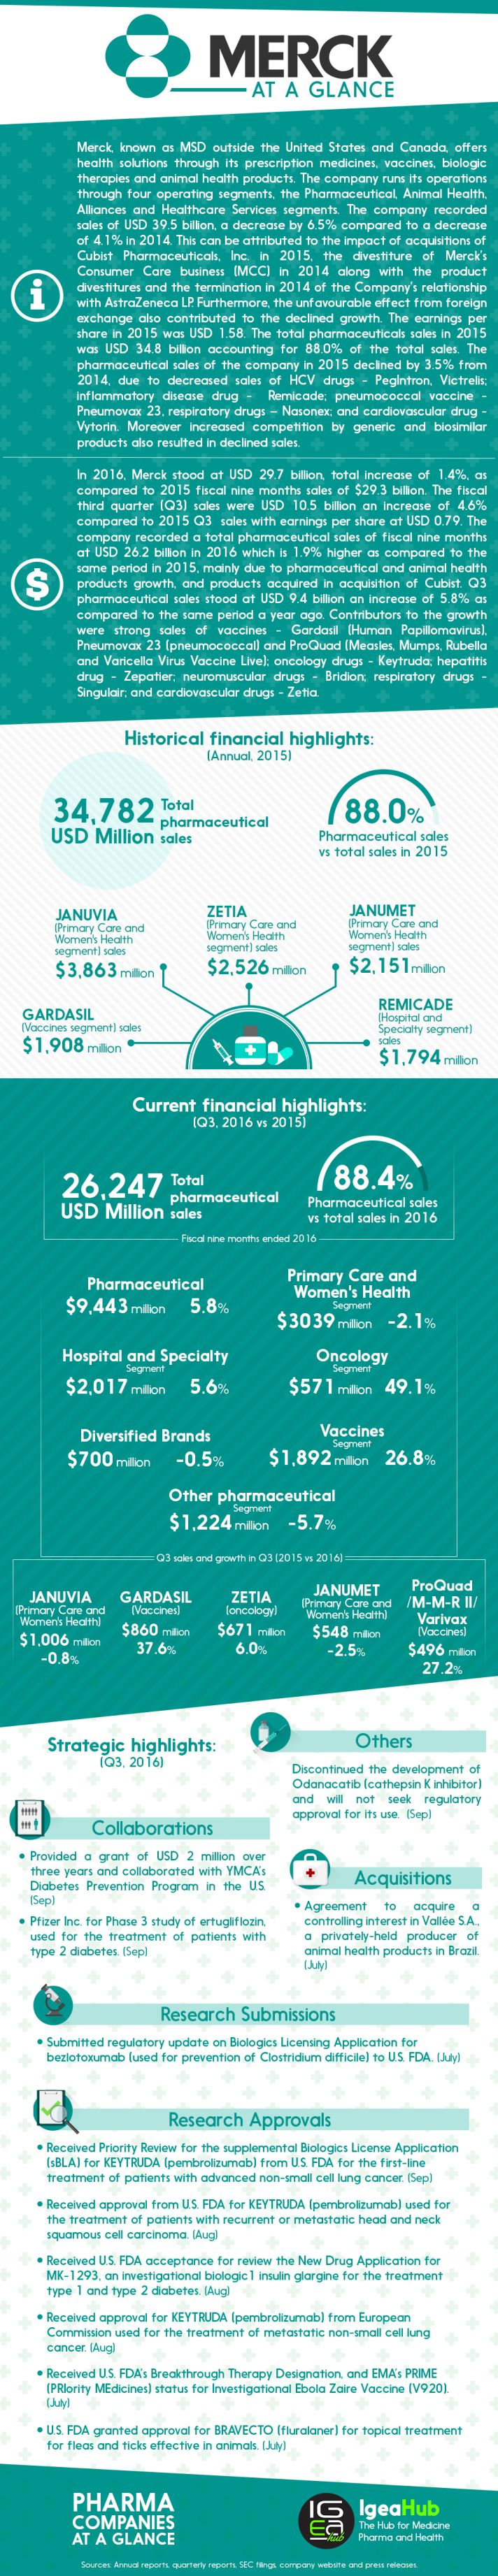 Best Pharmaceutical Companies at a Glance: Merck #pharma #health